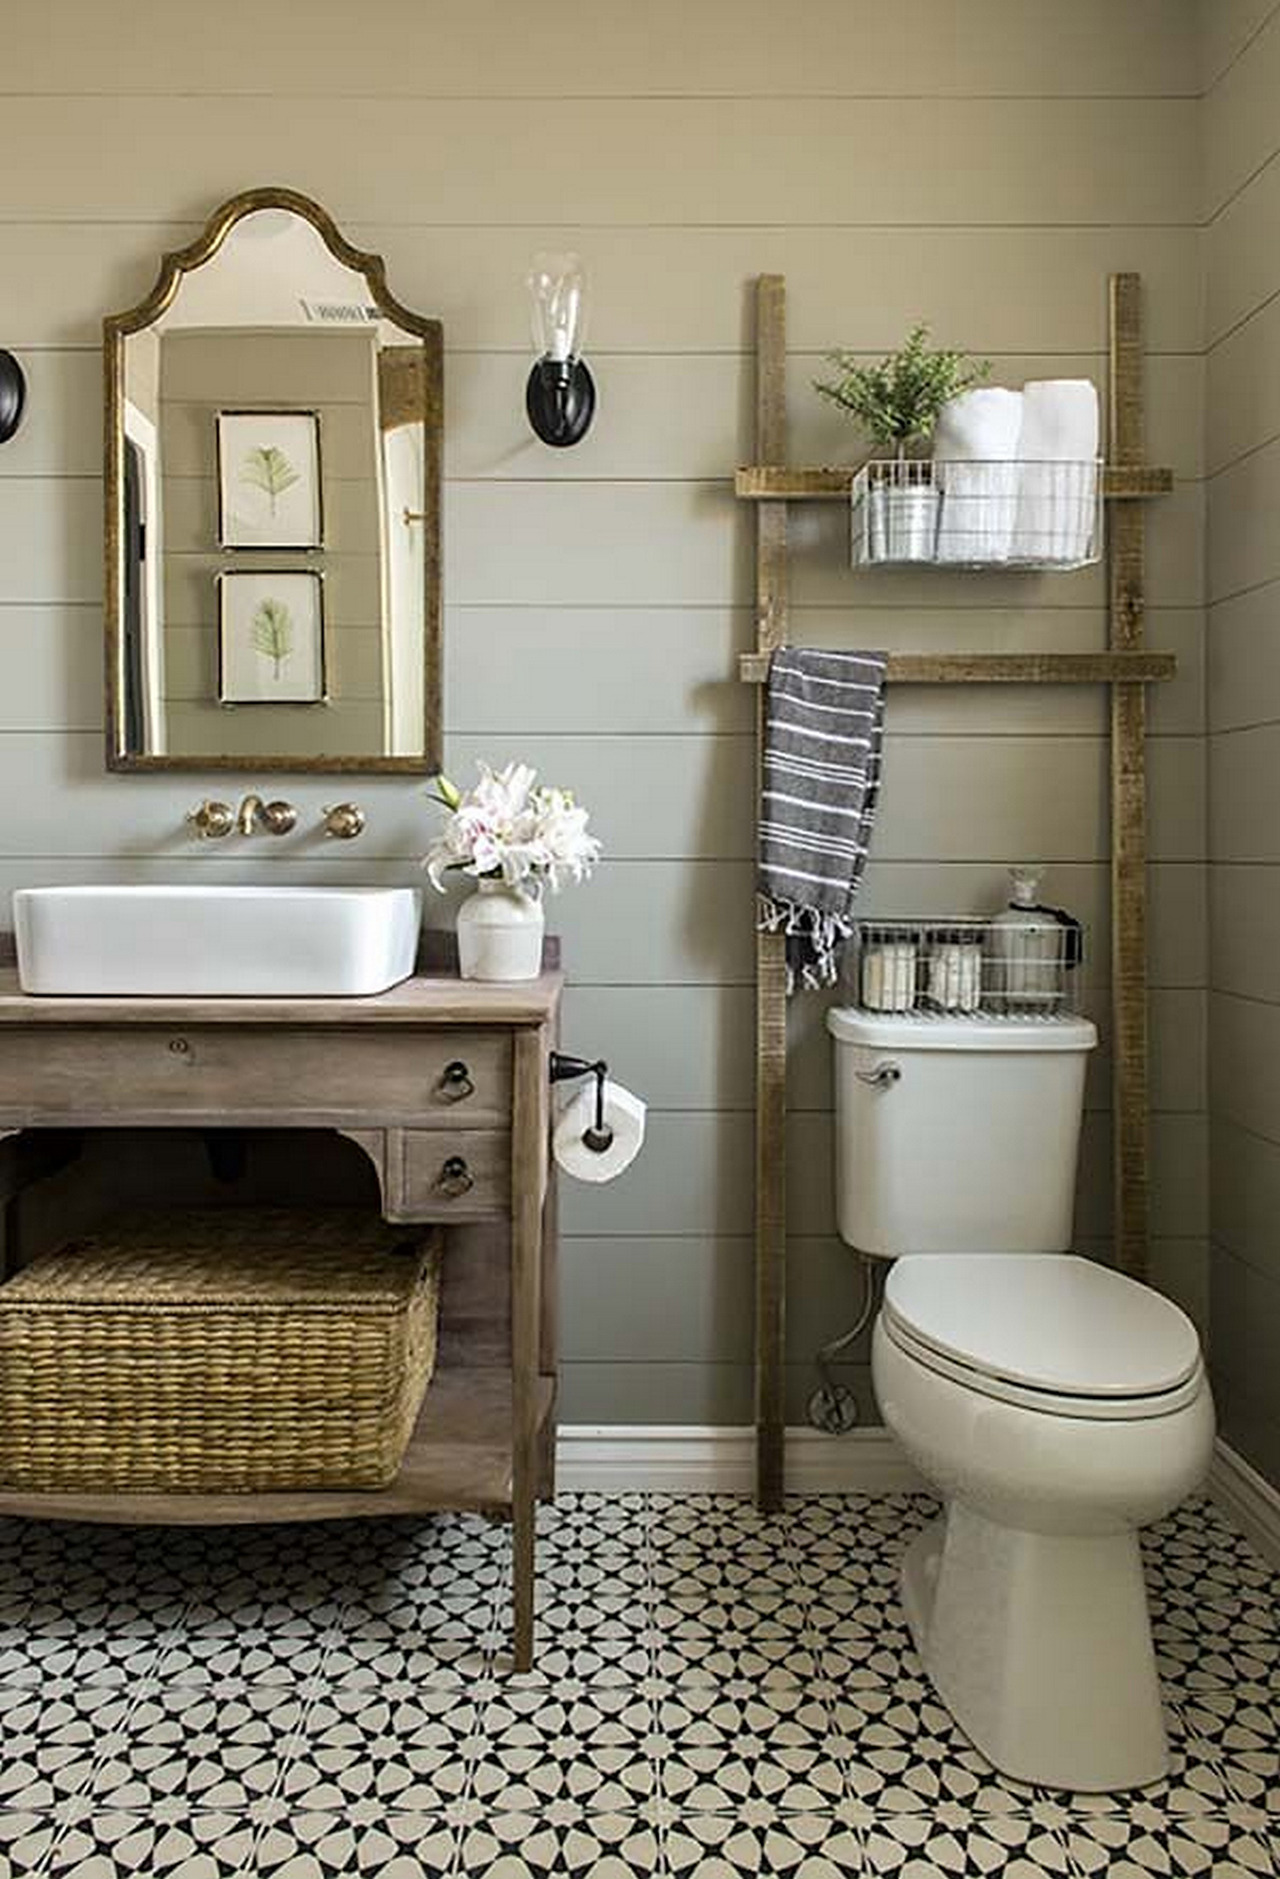 01 bathroom decor ideas homebnc